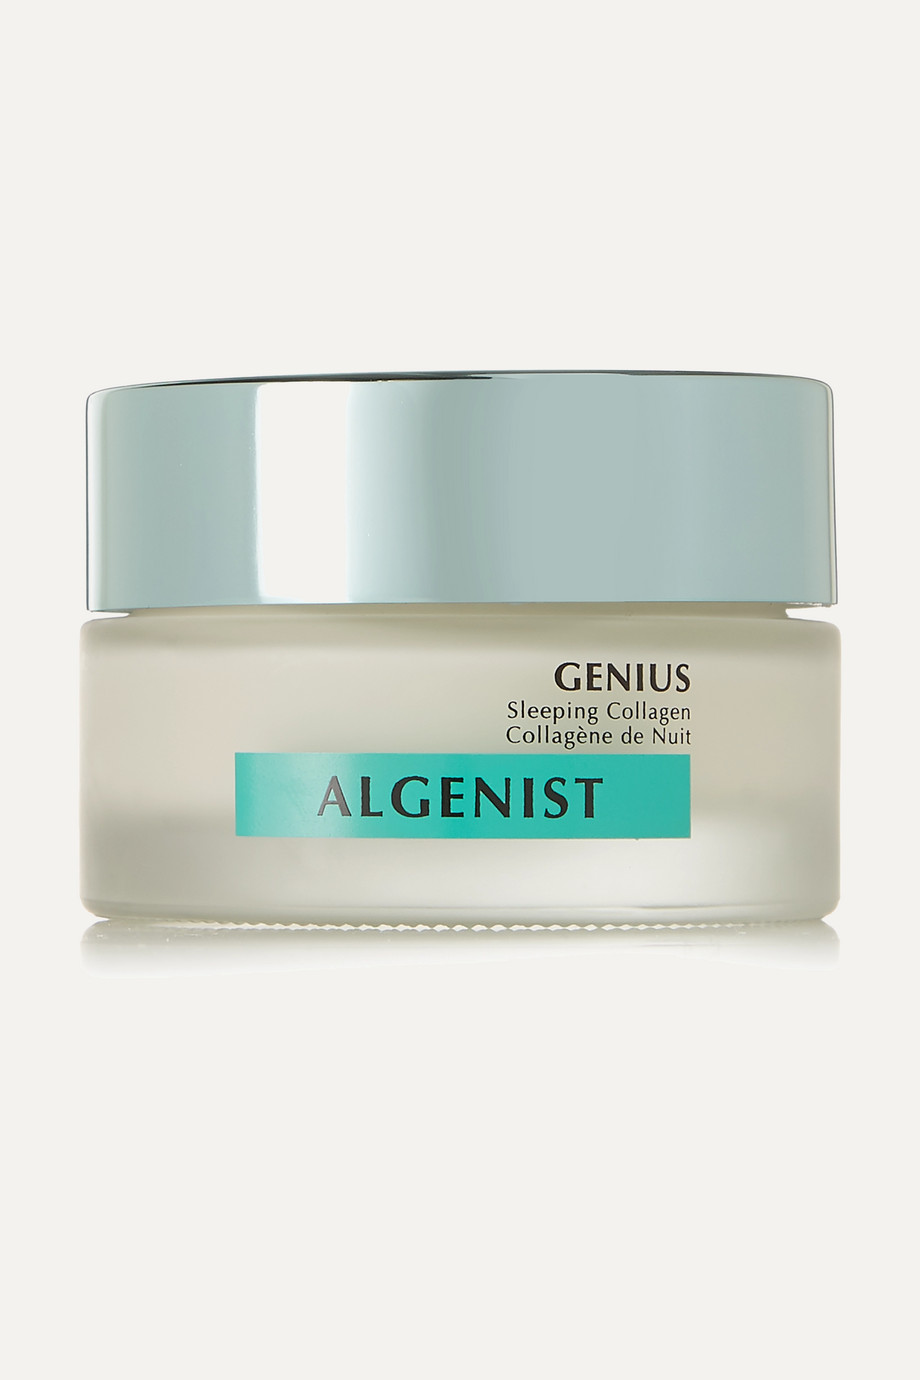 ALGENIST Genius Sleeping Collagen, 60ml